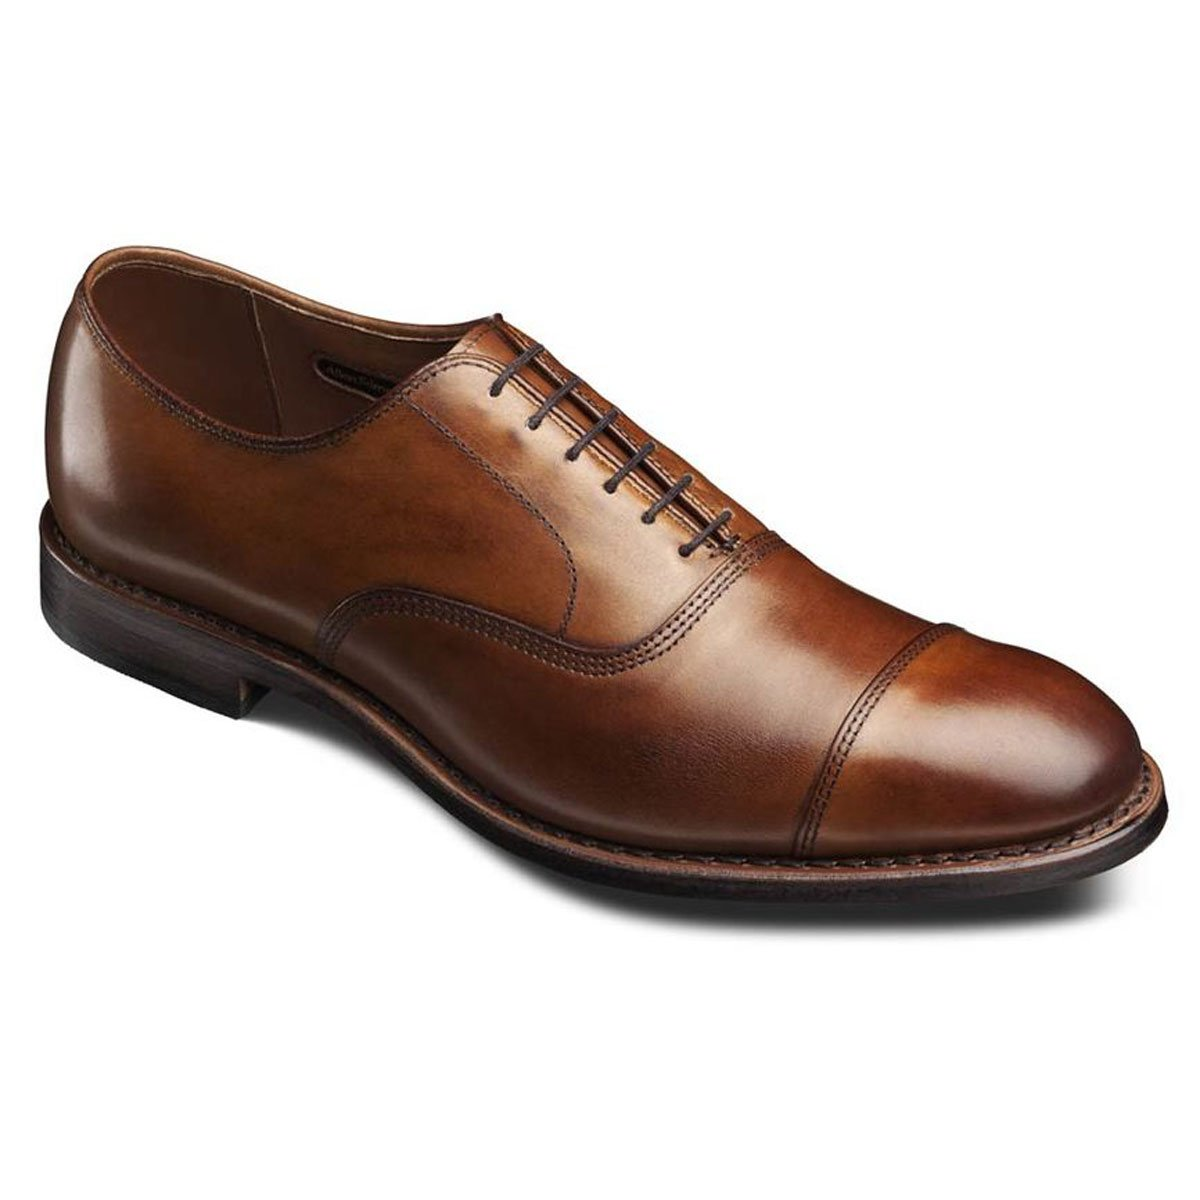 Allen Edmonds Men's Park Avenue Oxford, Walnut, 10 E US